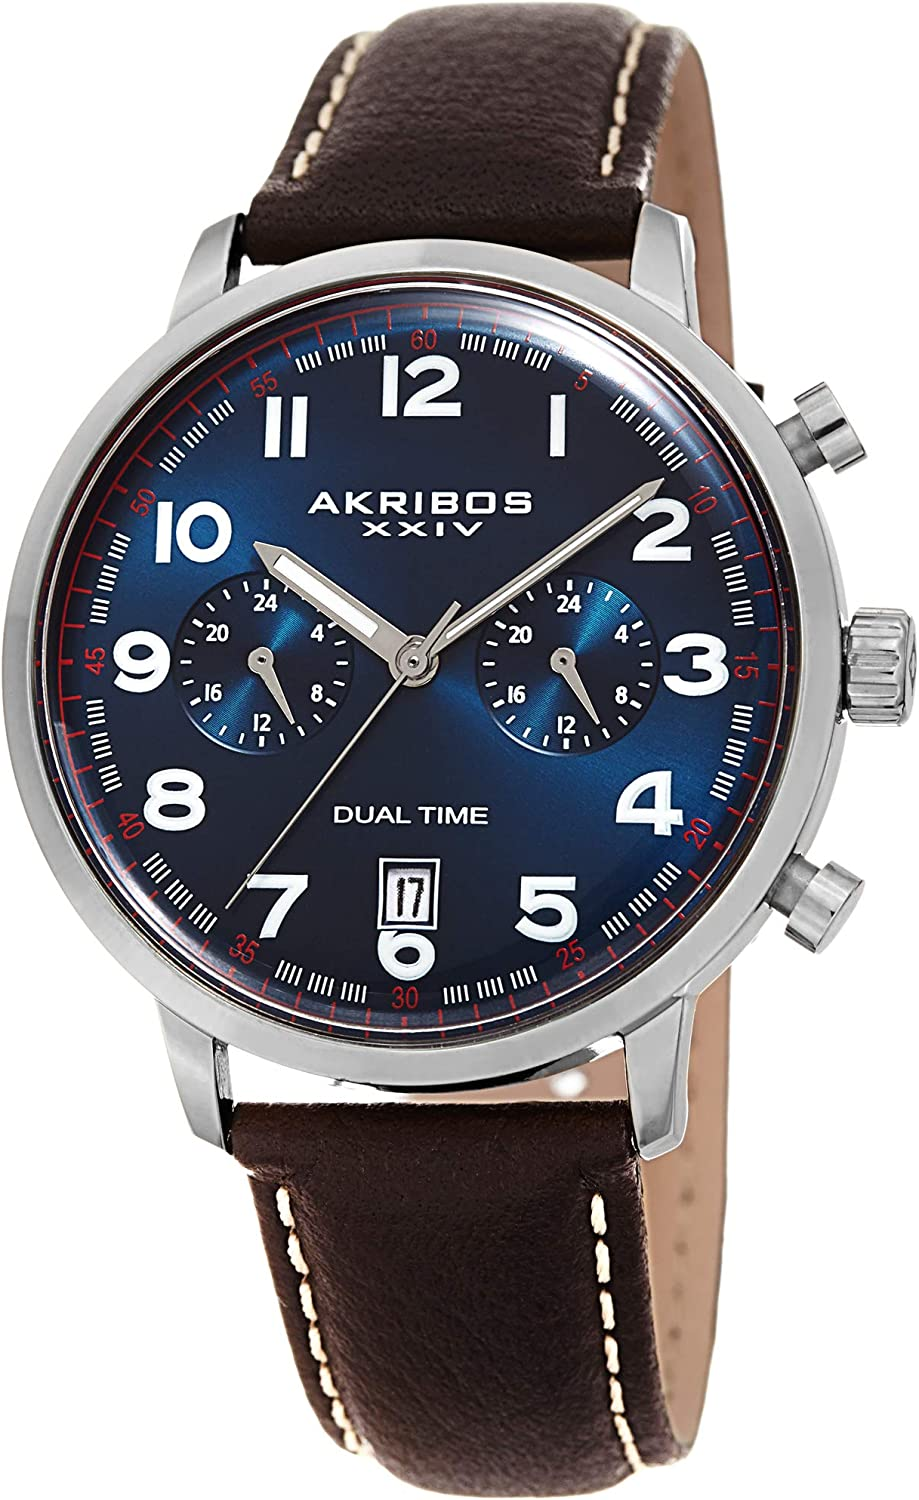 Akribos Multifunction Dual Time Chronograph Watch - Casual Designer Men's Leather Wristwatch with Sunray Dial - AK1023